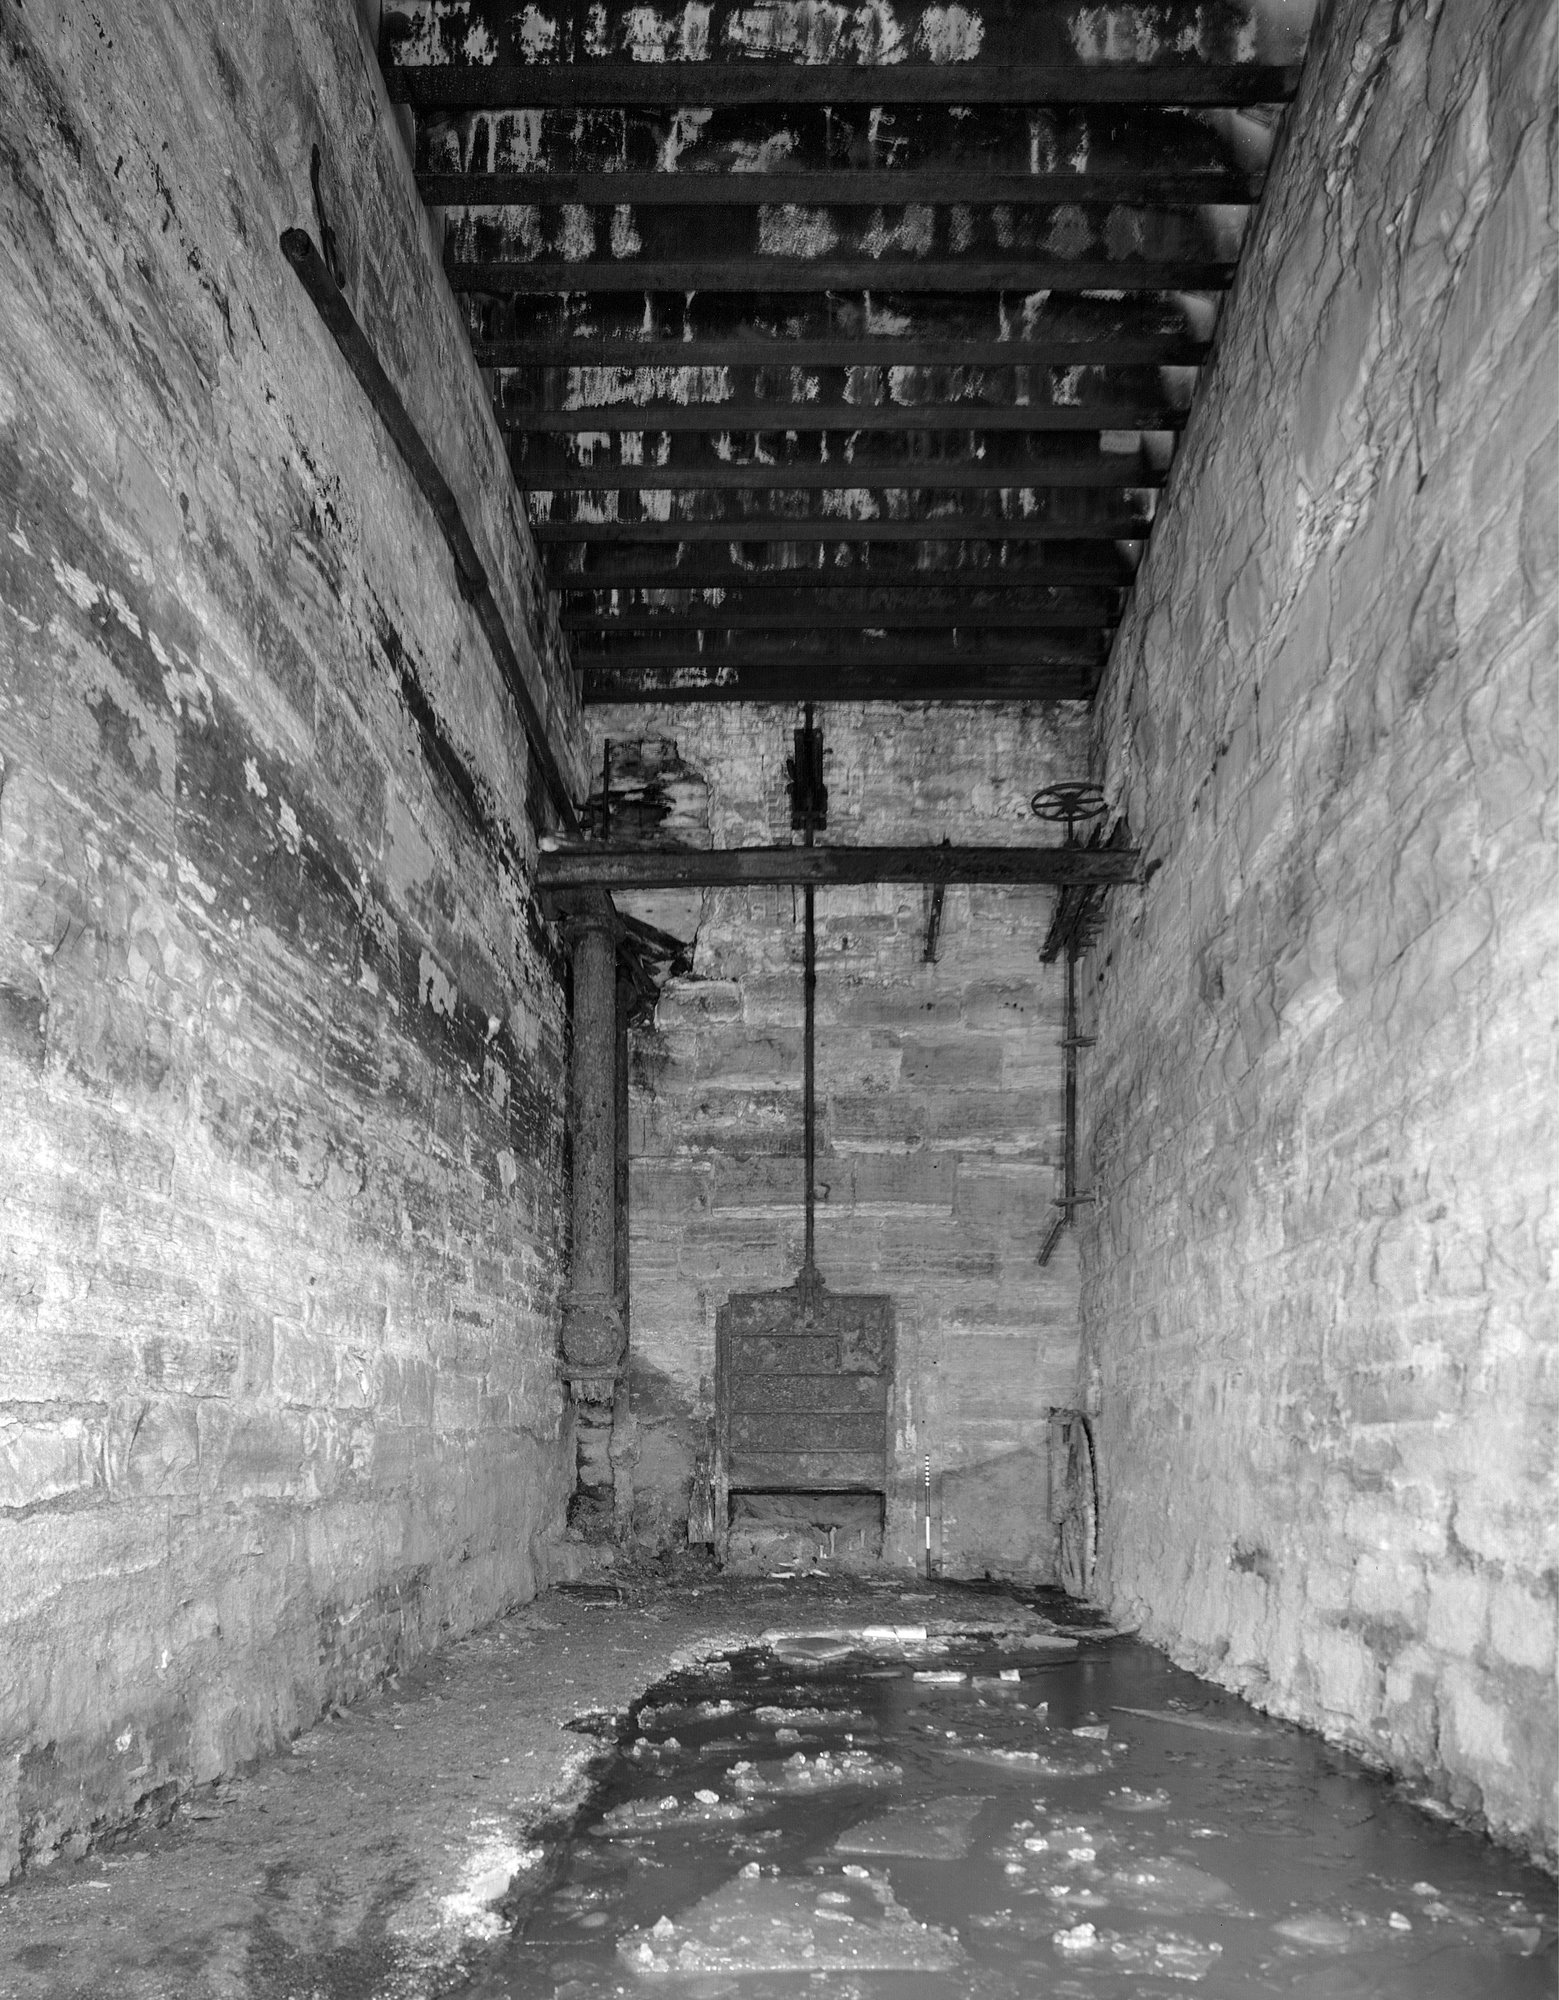 Headrace tunnel terminus behind trash rack - HABS MN-29-5-A-27 (Please credit Daniel R. Pratt and the Historic American Buildings Survey)